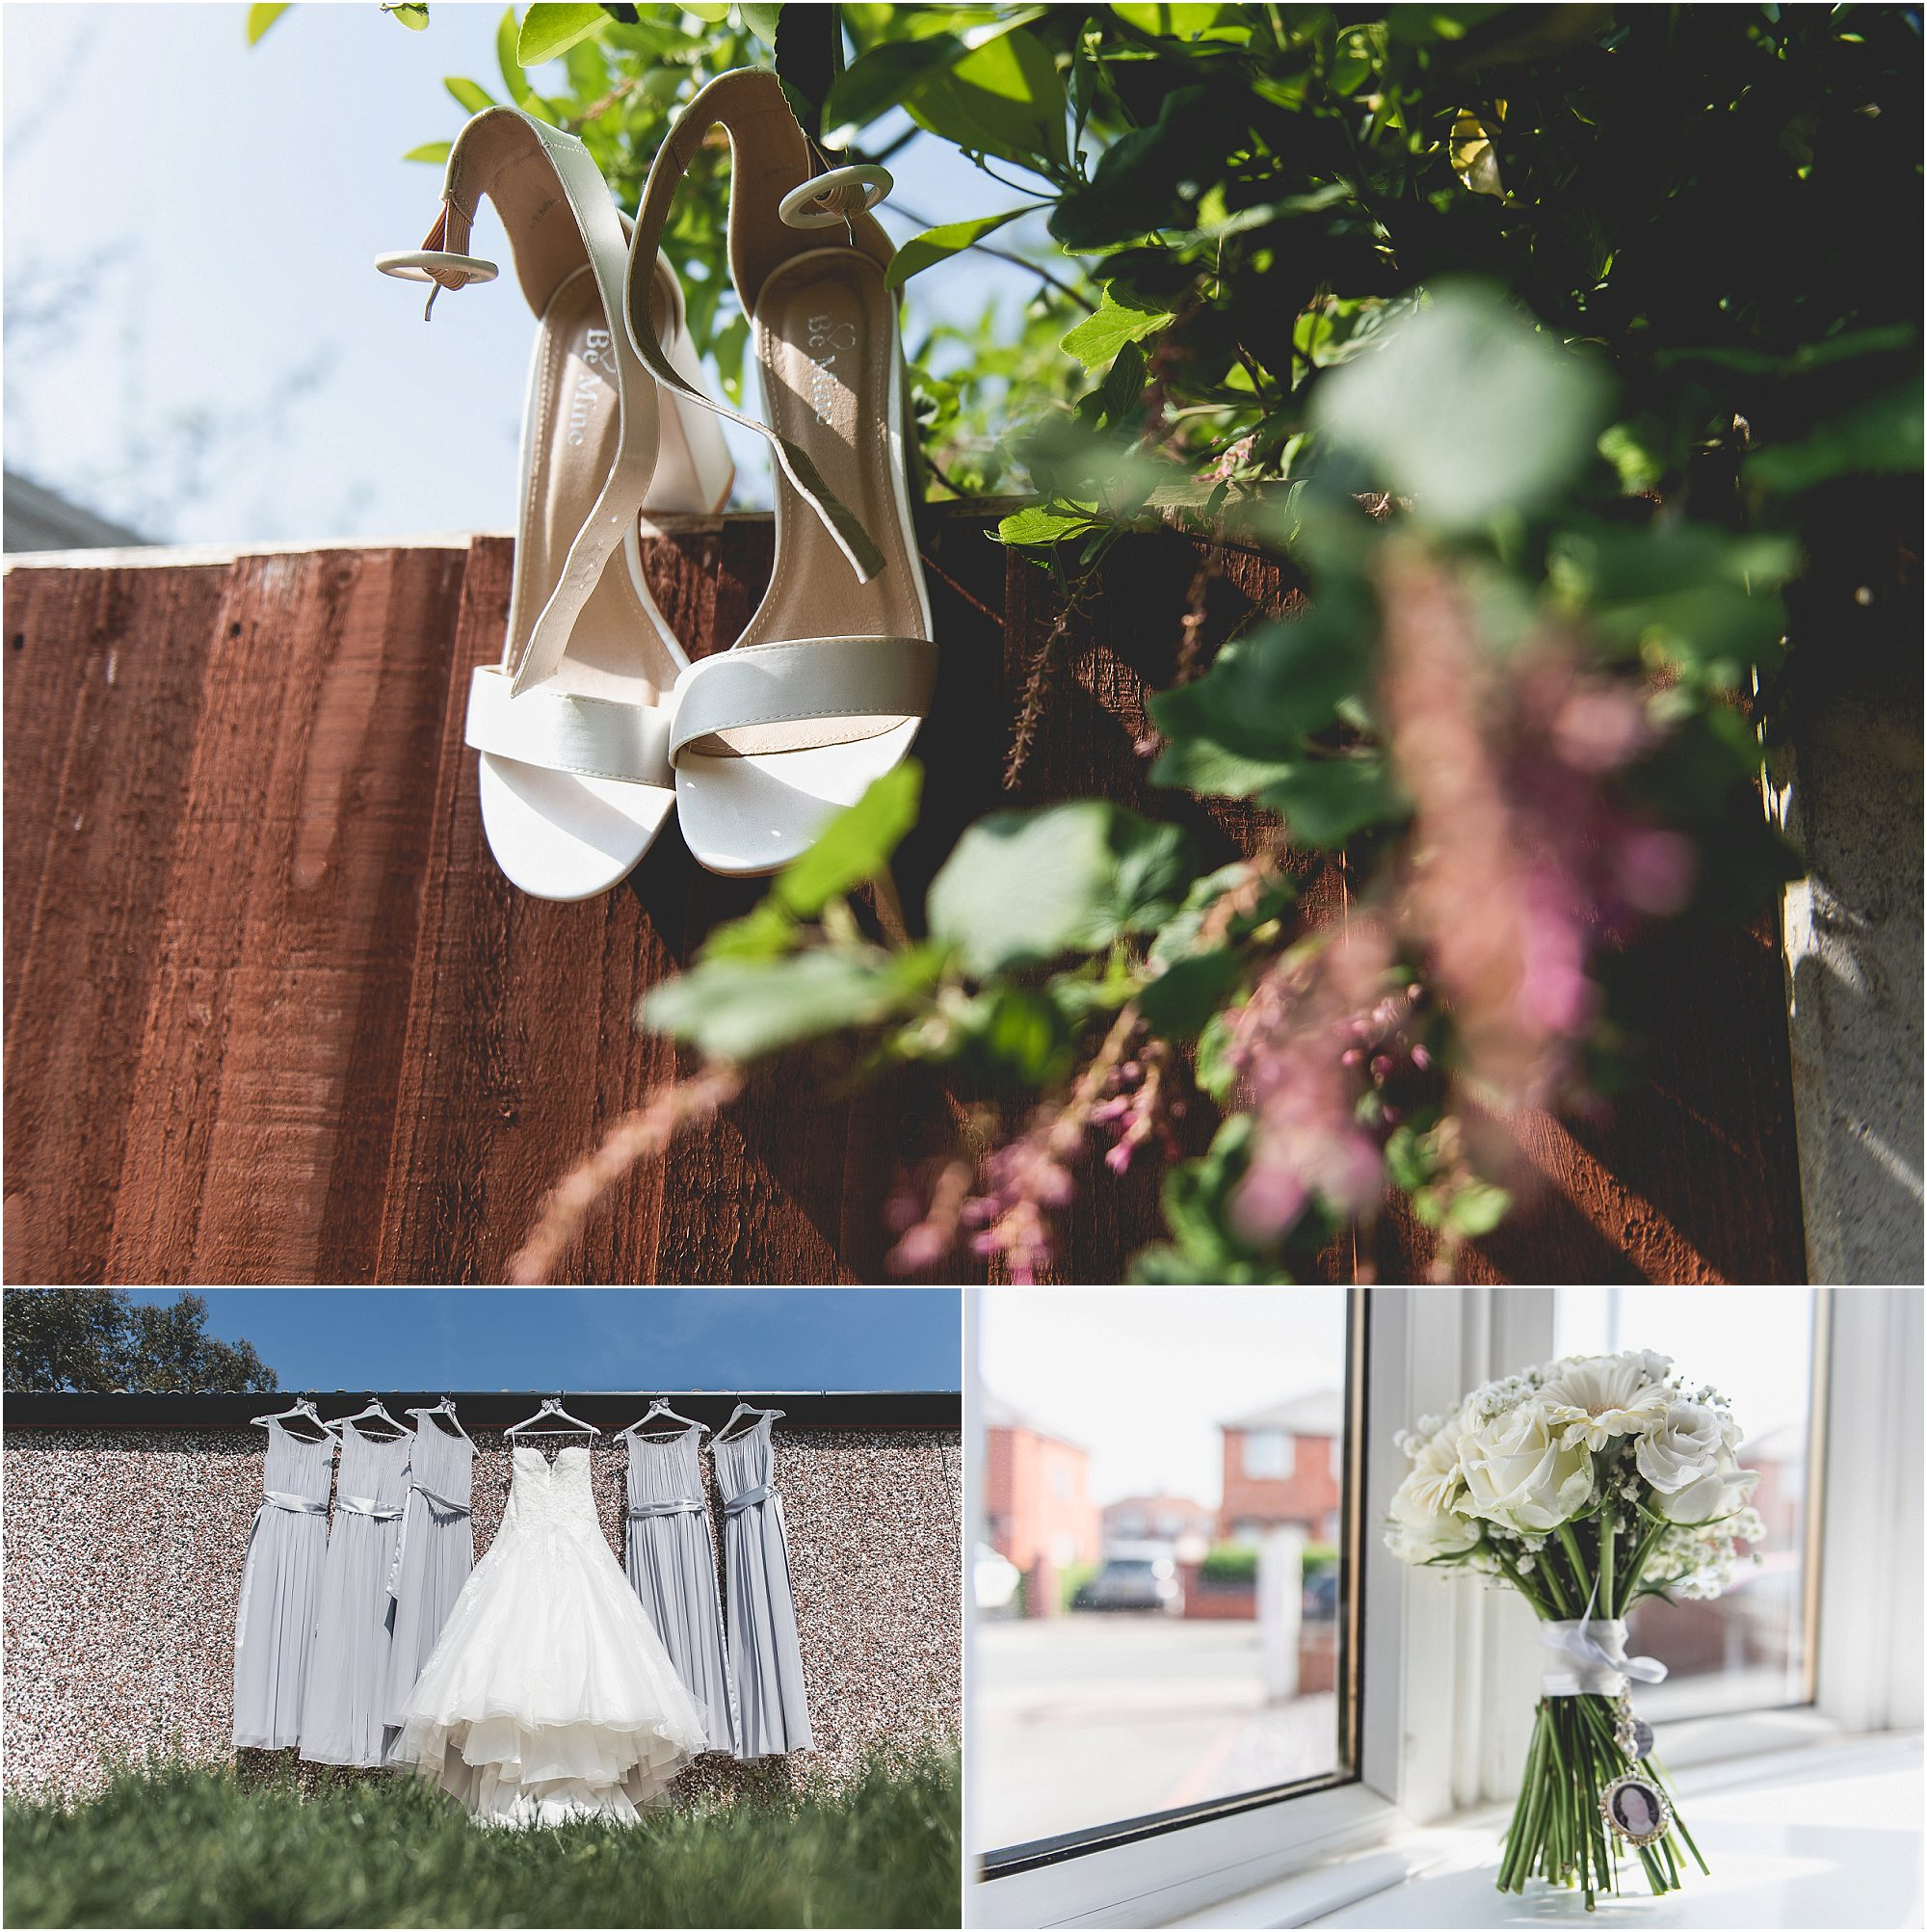 brides shoes, wedding dress and flowers